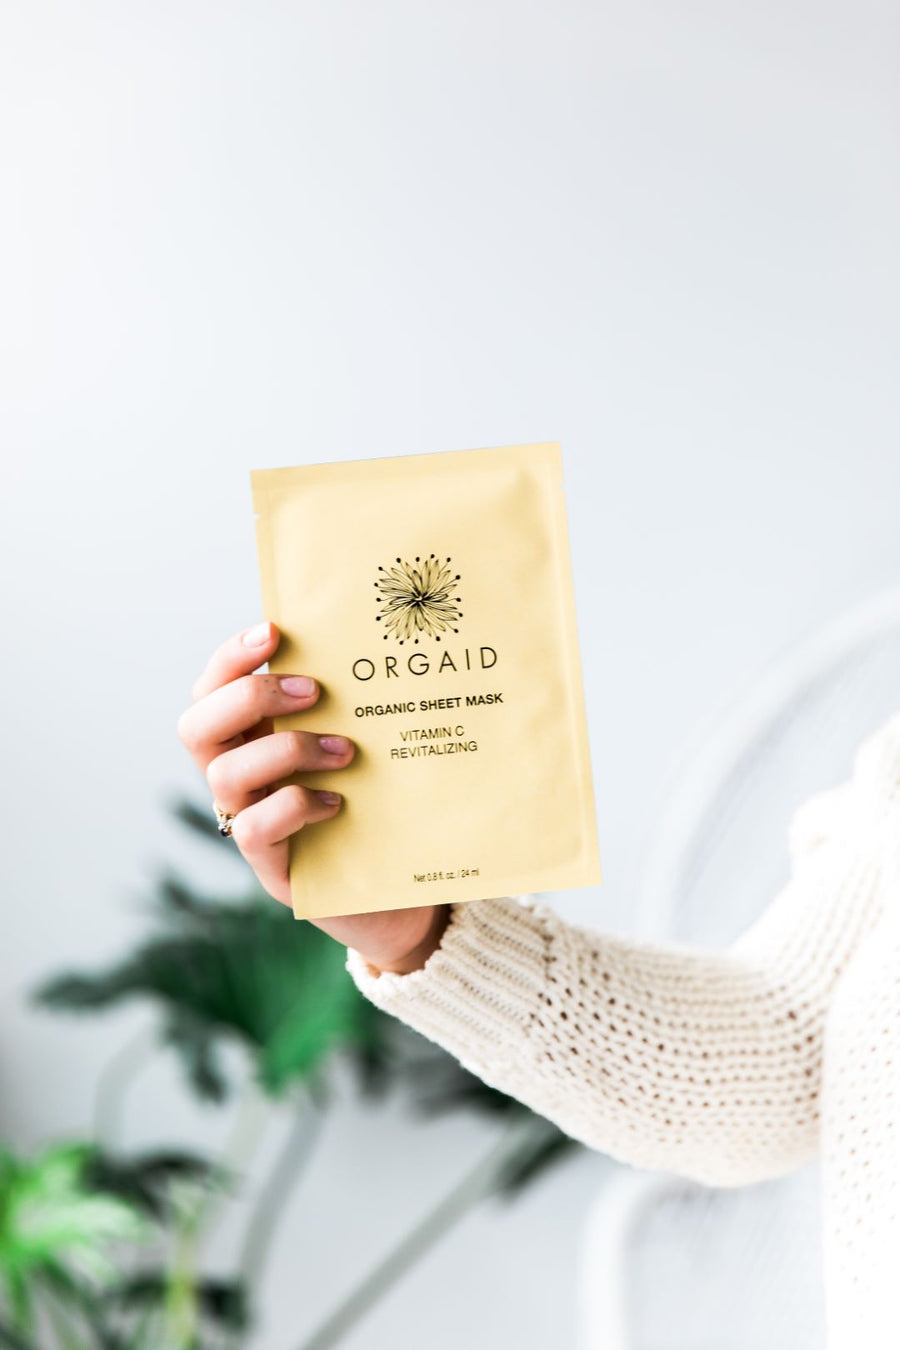 Orgaid - ORGANIC SHEET MASK | VITAMIN C & REVITALIZING